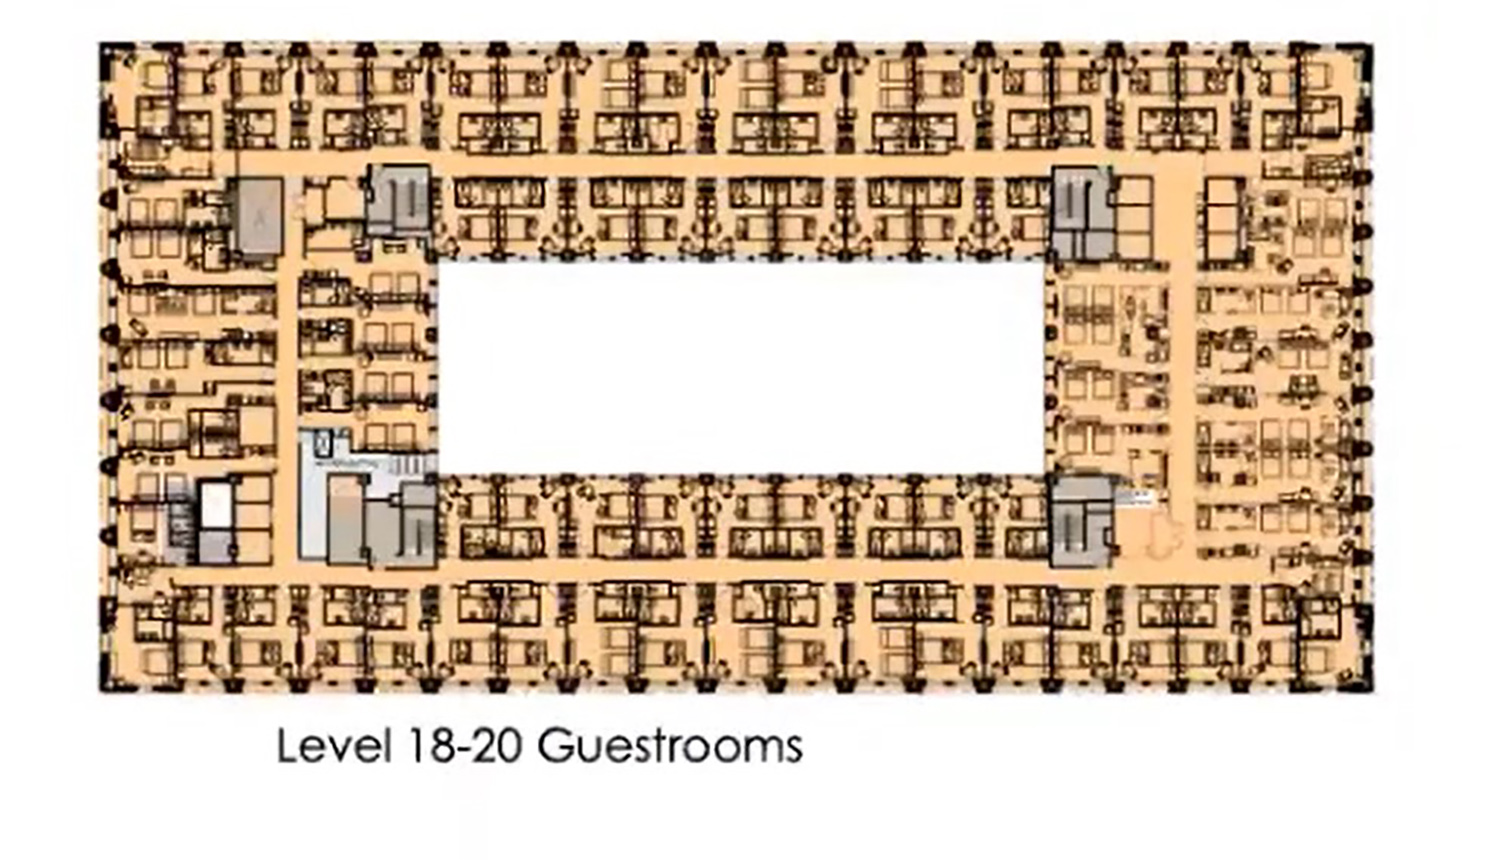 18-20 Guest Rooms Floor Plan for 208 S LaSalle Street. Drawing by The Prime Group